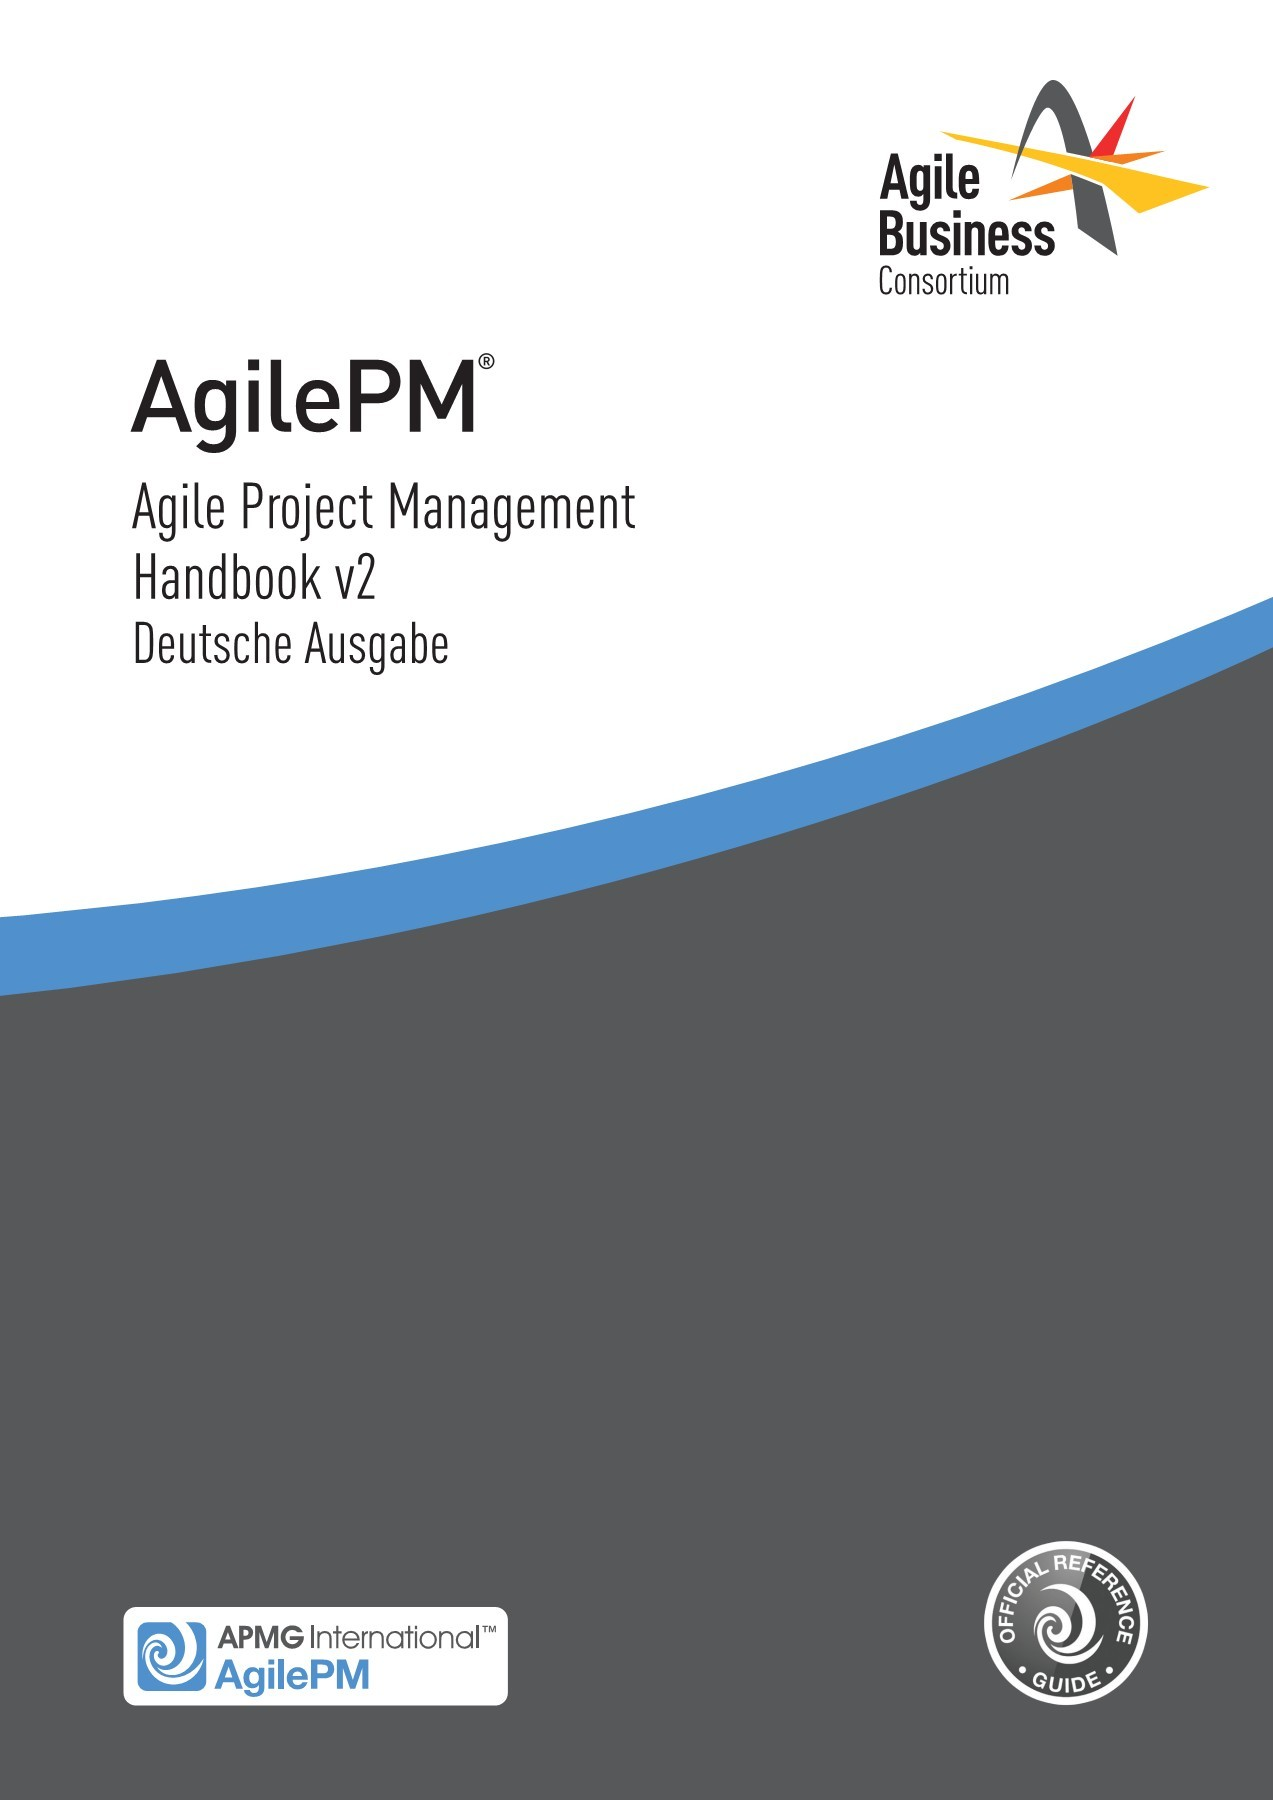 Agile Project Management (AgilePM) Handbook Deutsche Ausgabe